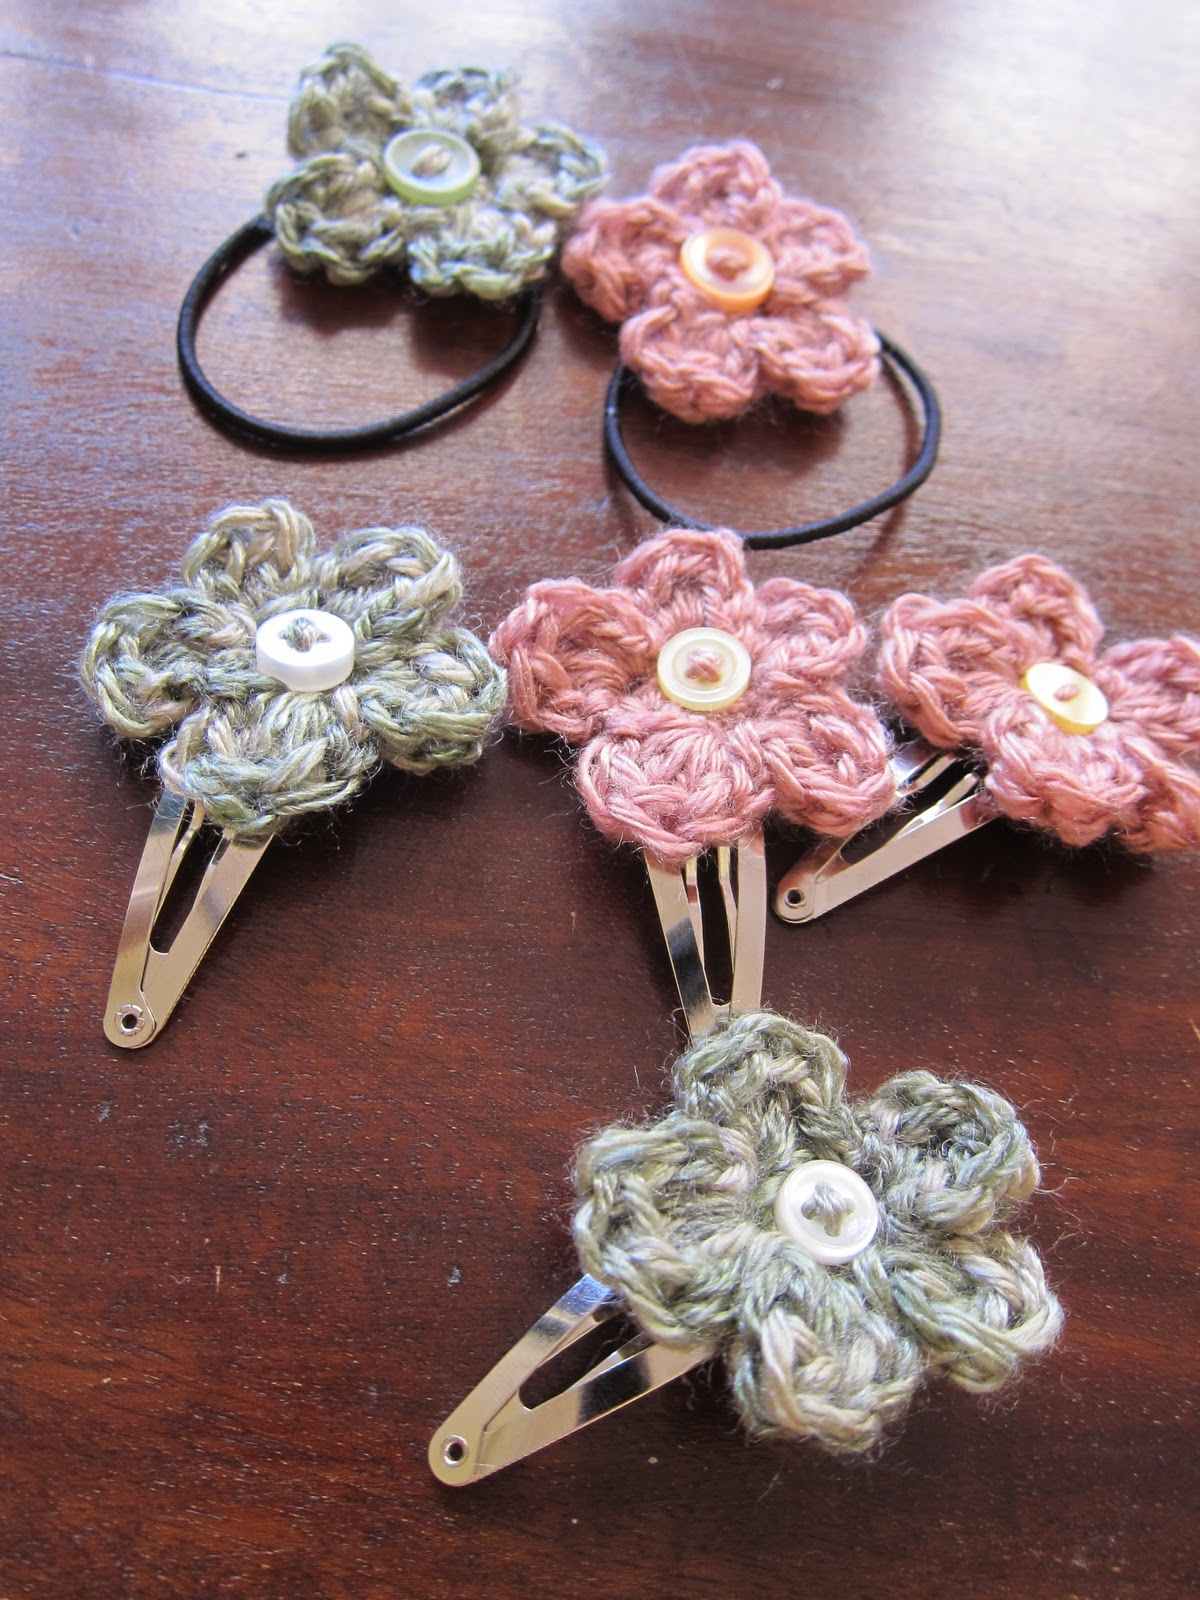 Crochet Hair Accessories : Crochet Hair Accessories Free Patterns - Crochet Patterns Books